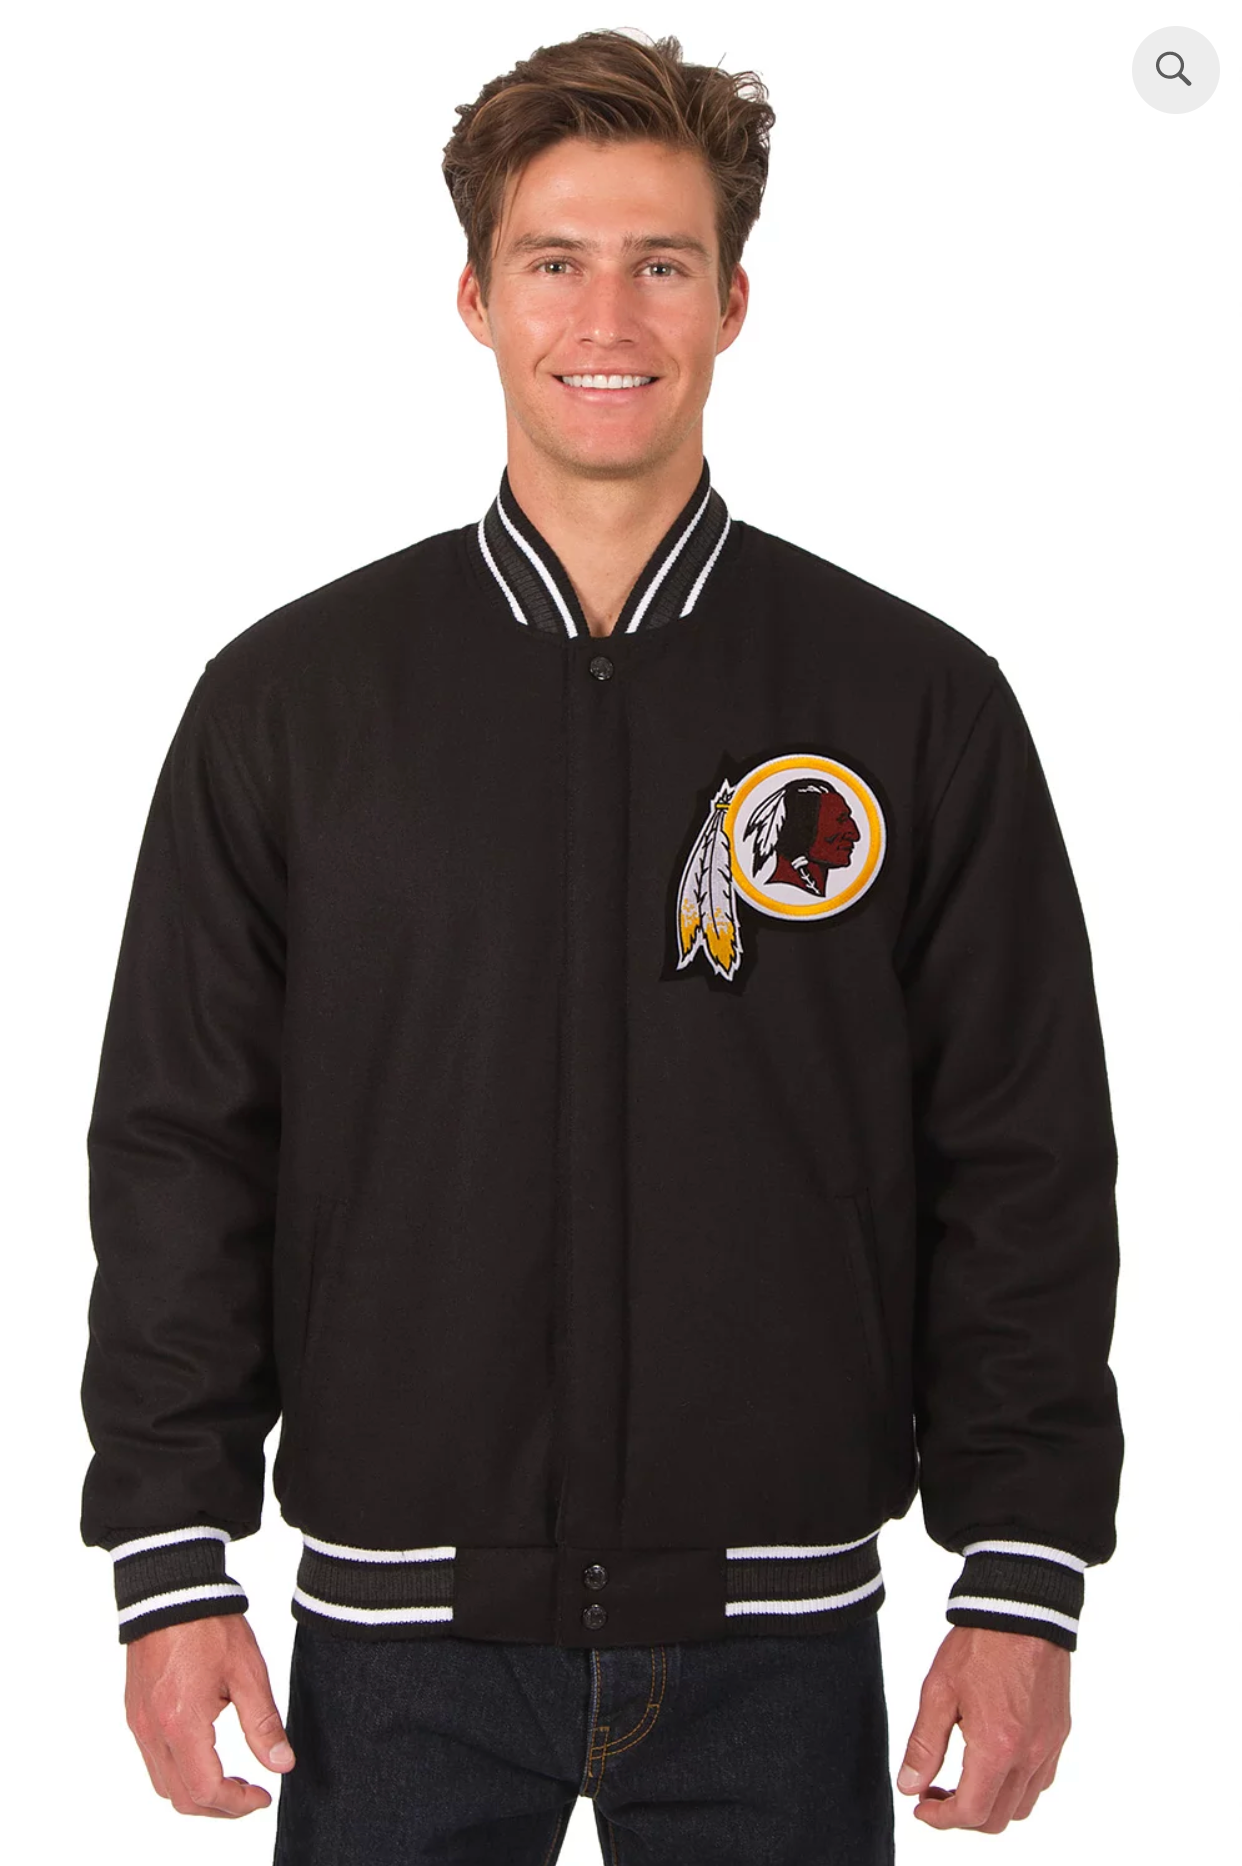 Washington Redskins Reversible Varsity Jacket